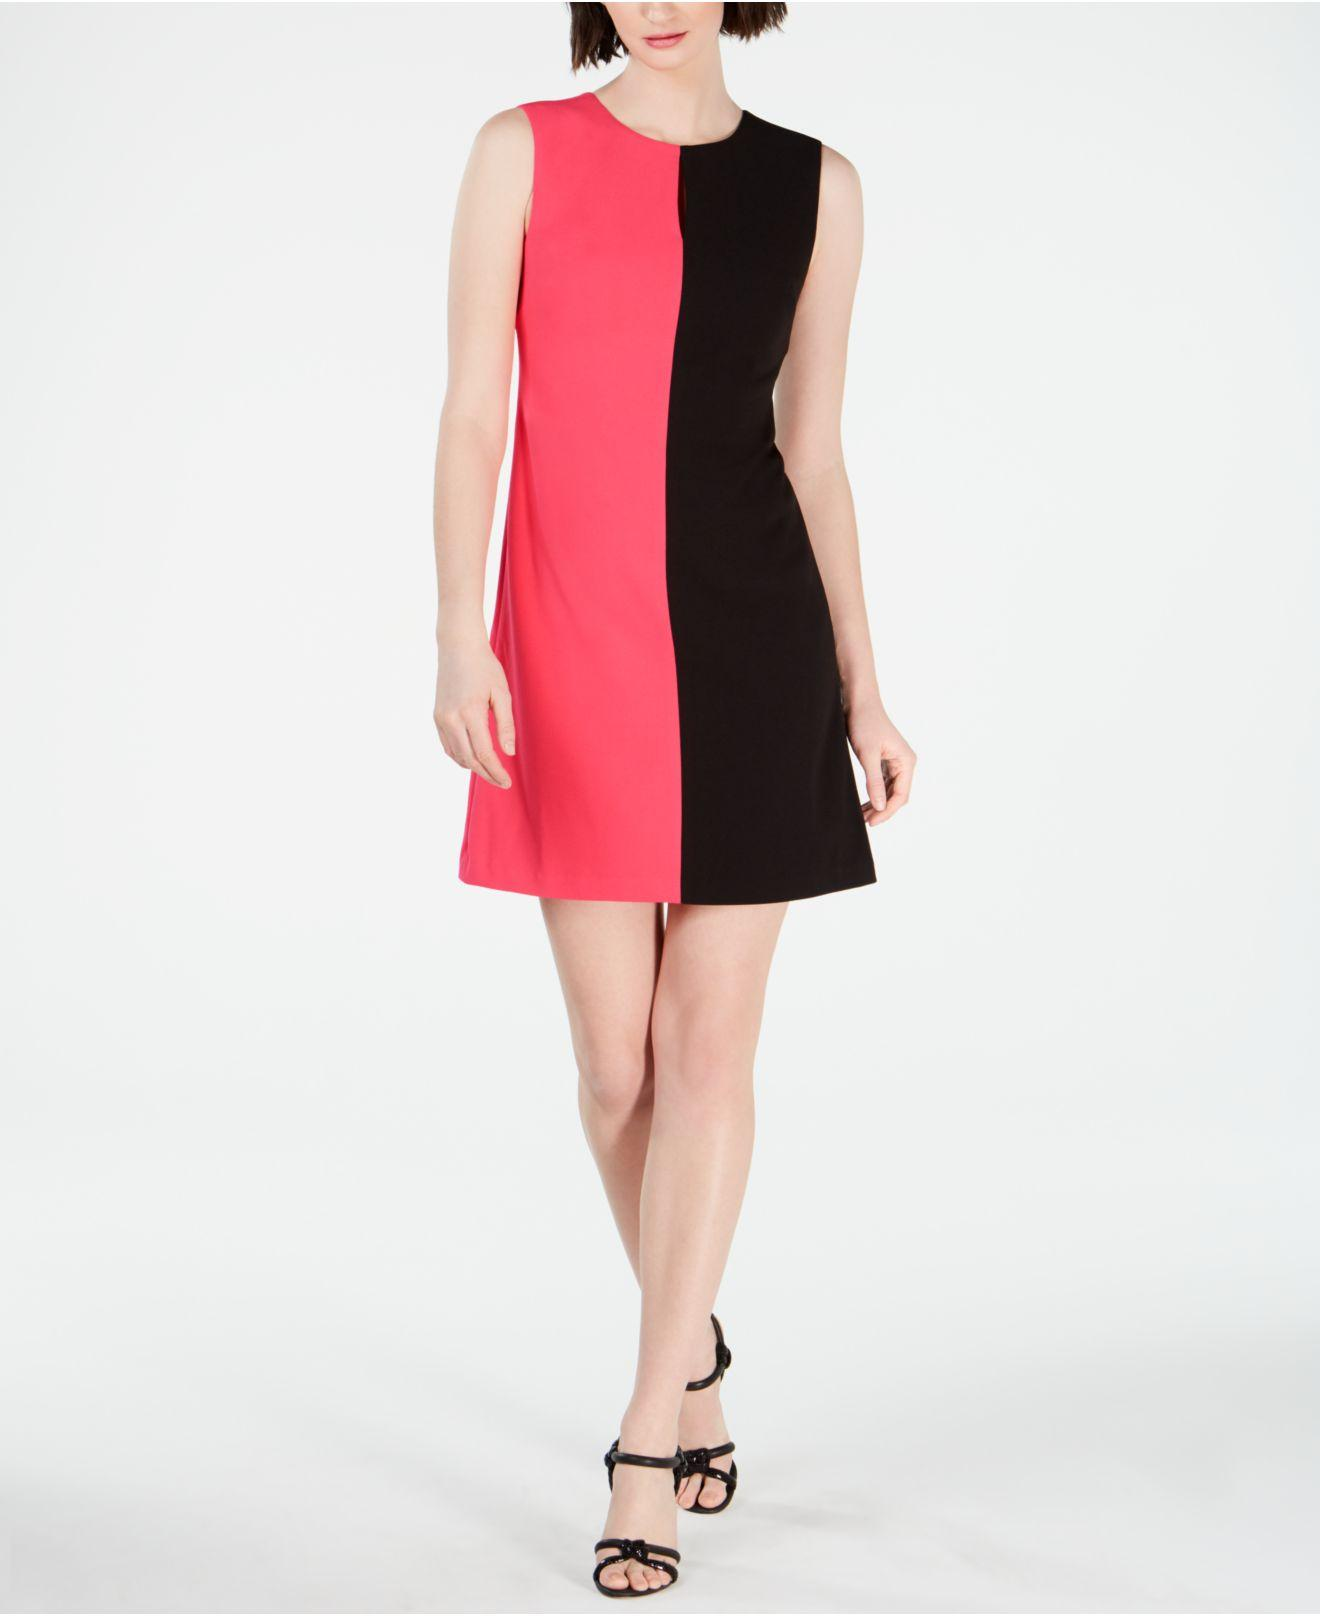 65a9624f Lyst - Calvin Klein Sleeveless Colorblock Shift Dress in Black